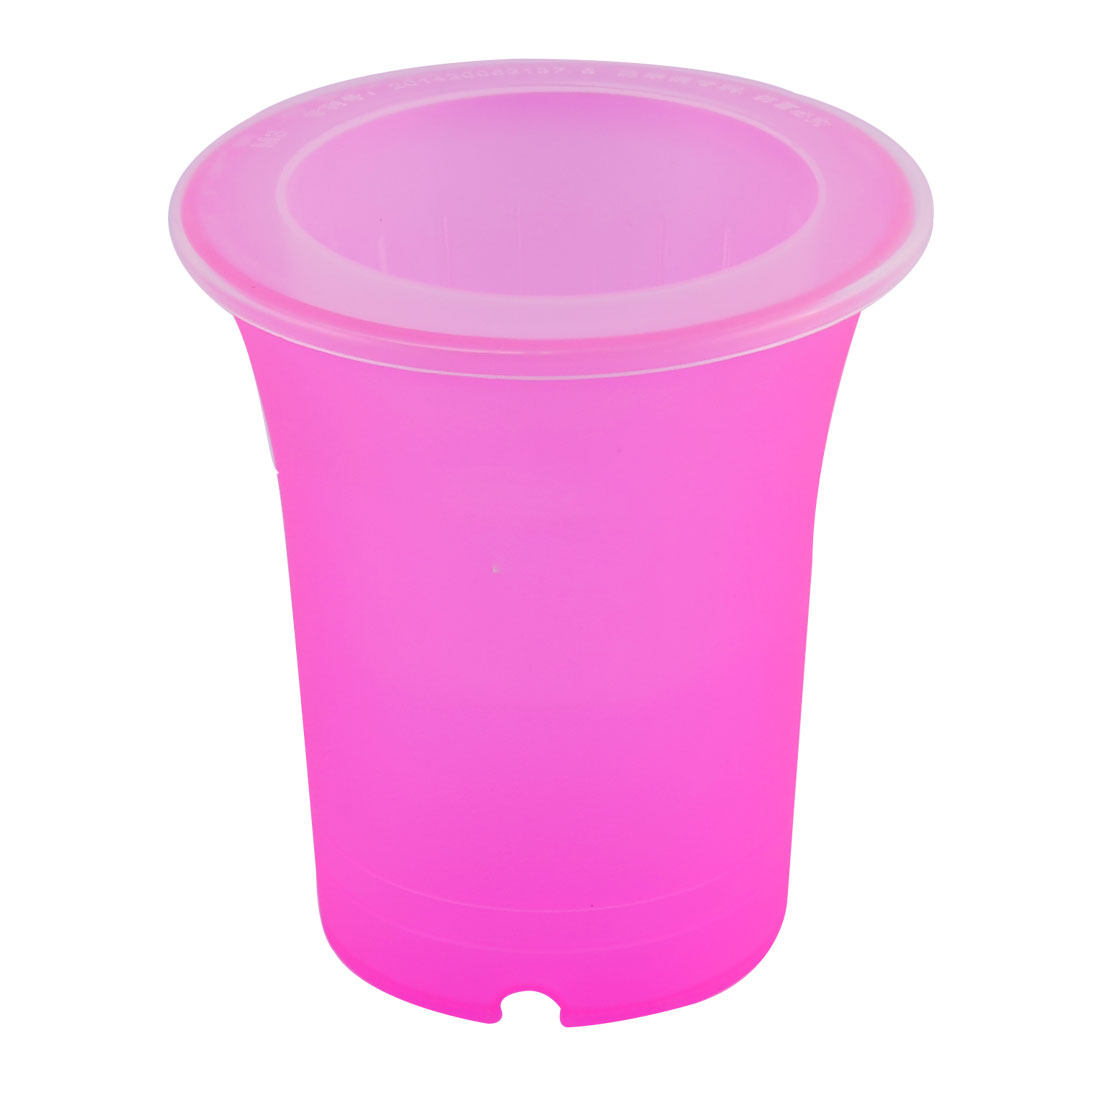 Plastic Cylinder Two Layers Self Watering Planter Holder Flower Pot Fuchsia